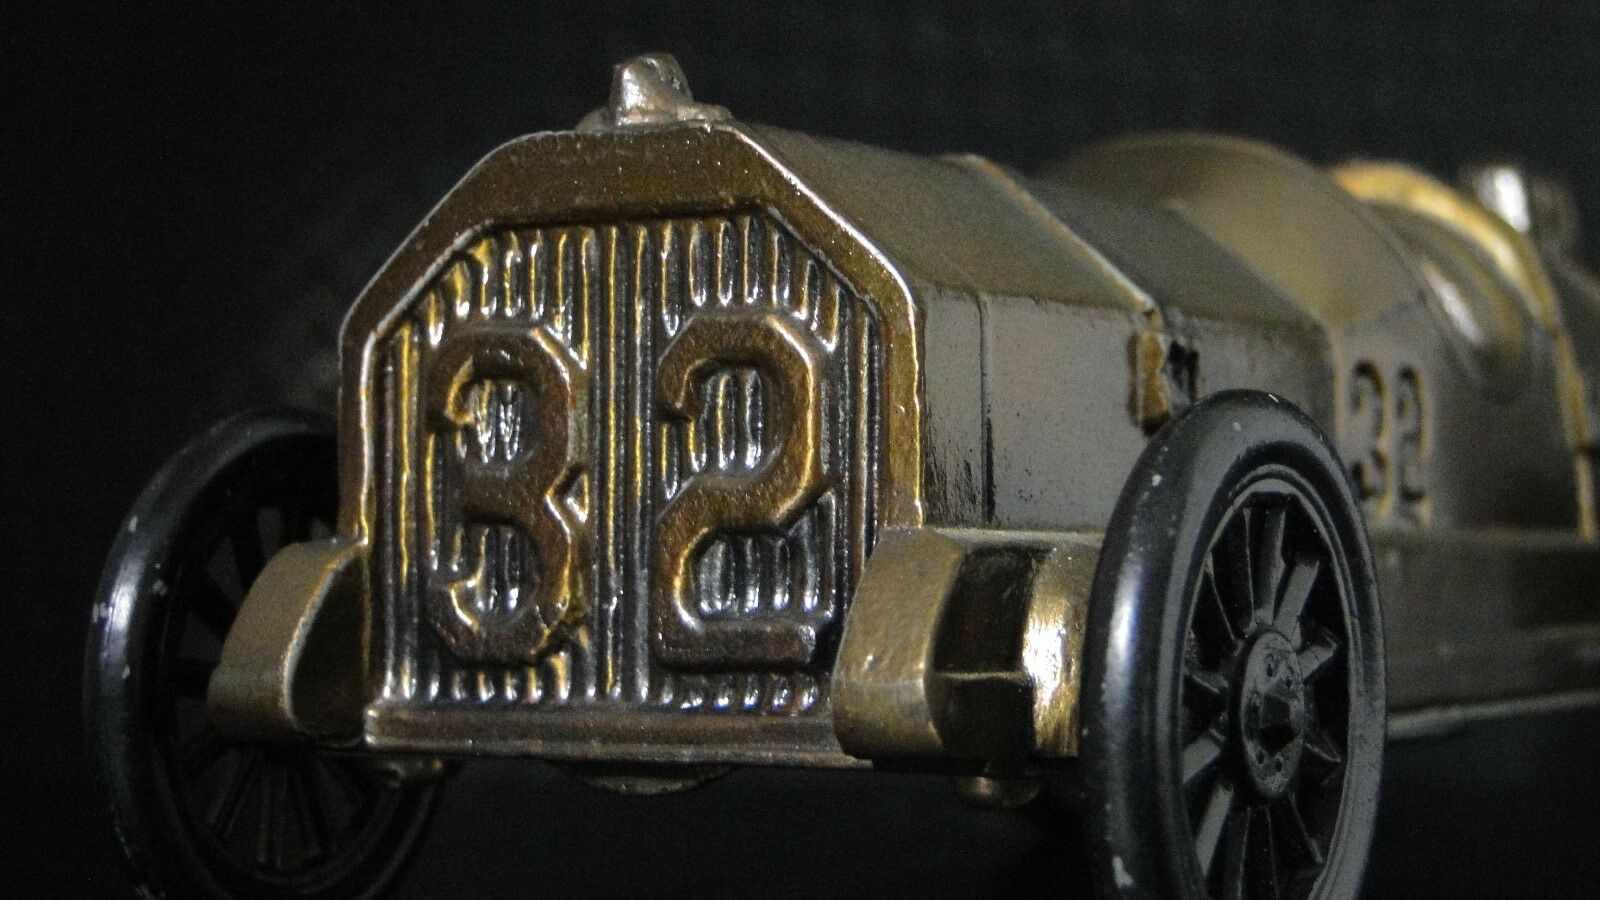 Indy GP Race Car  Ford F 1 24 Vintage Vintage Vintage Antique Metal 18 Carousel Bronze 06a01c